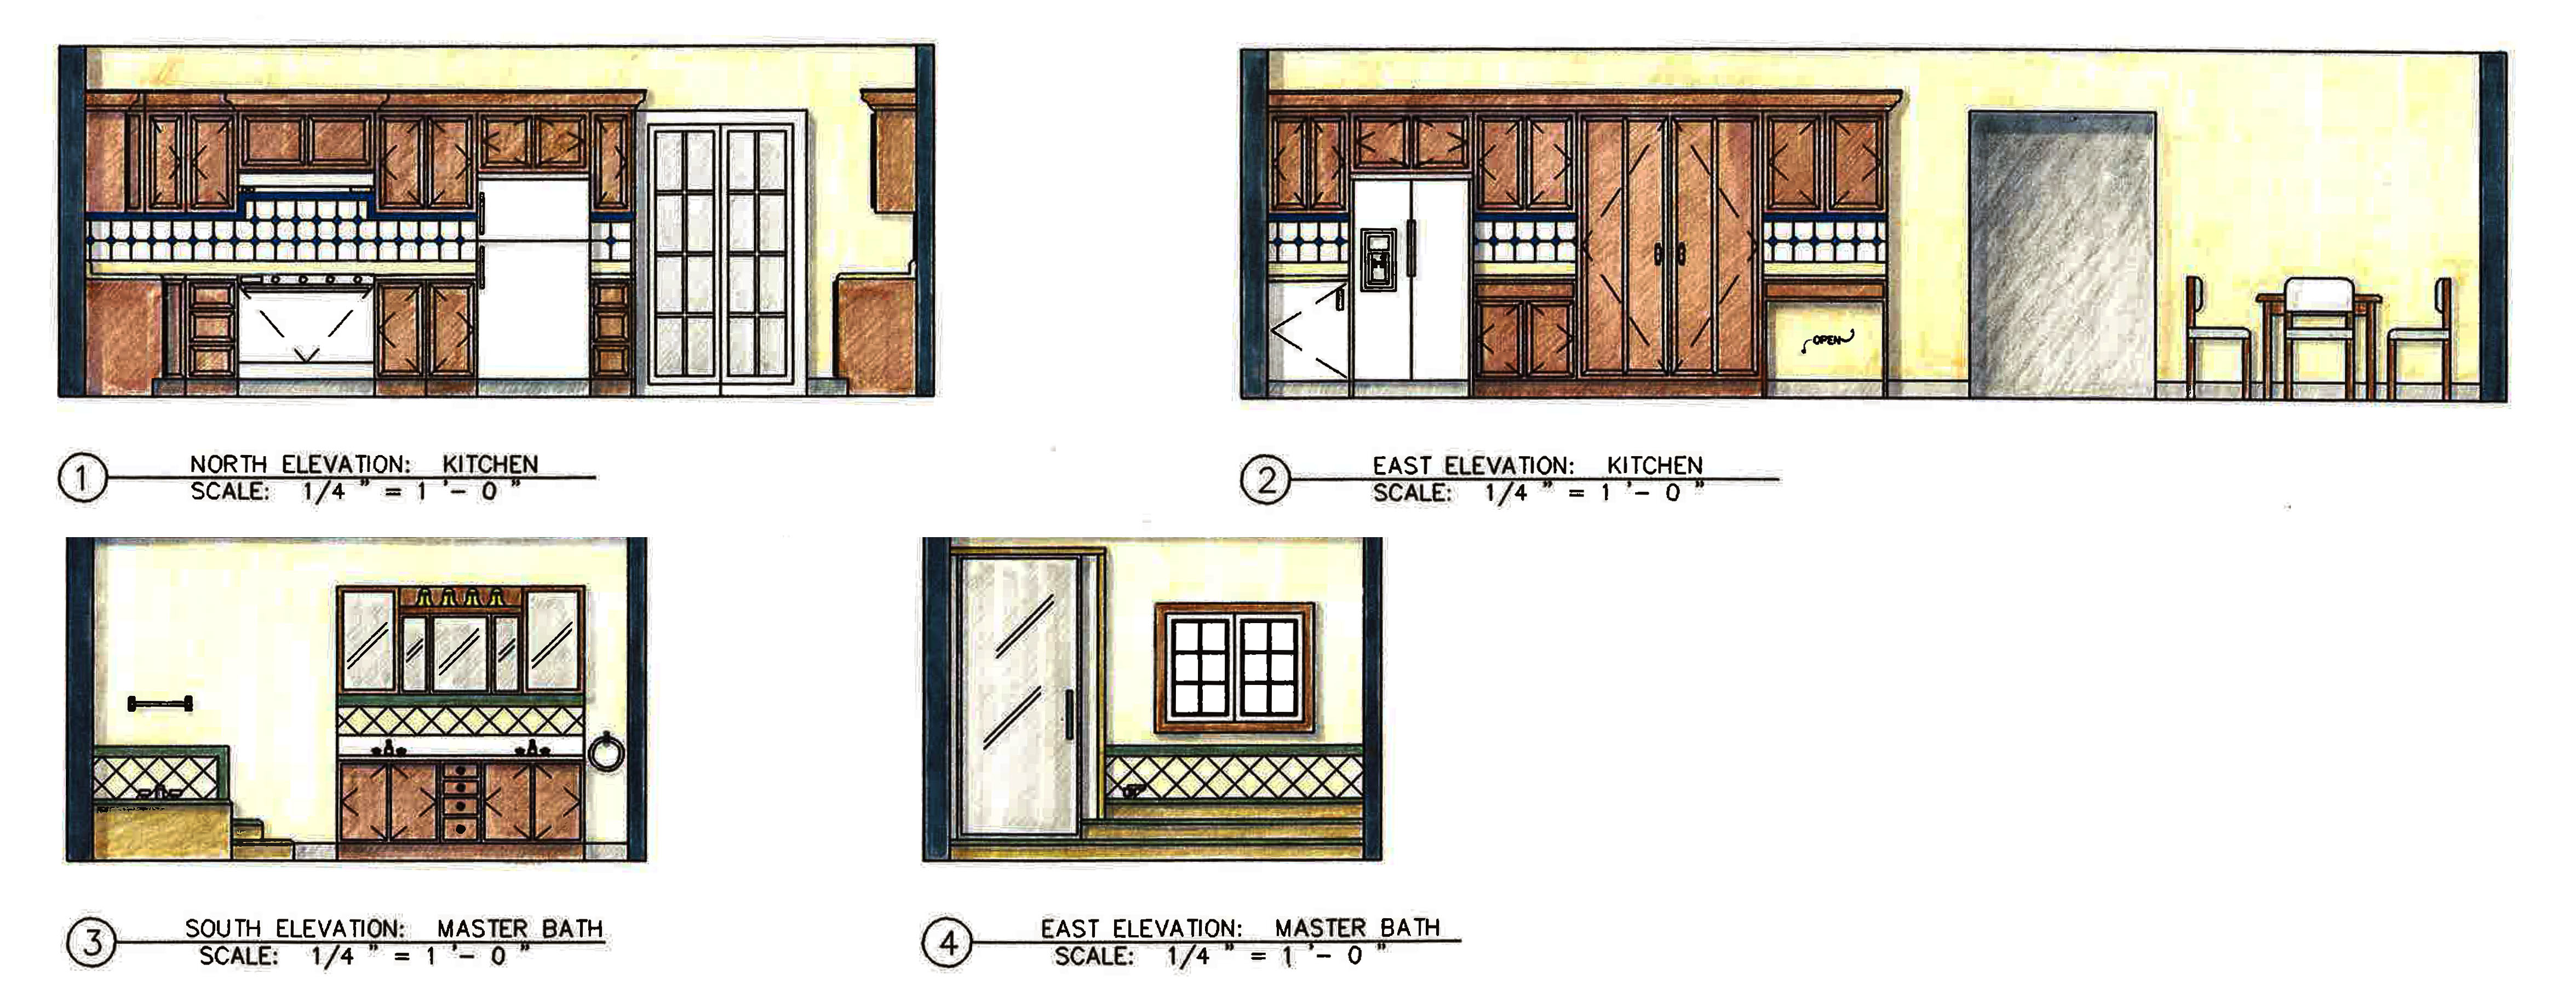 Floor And Elevation Renderings By Laurie Davis At Coroflot Com